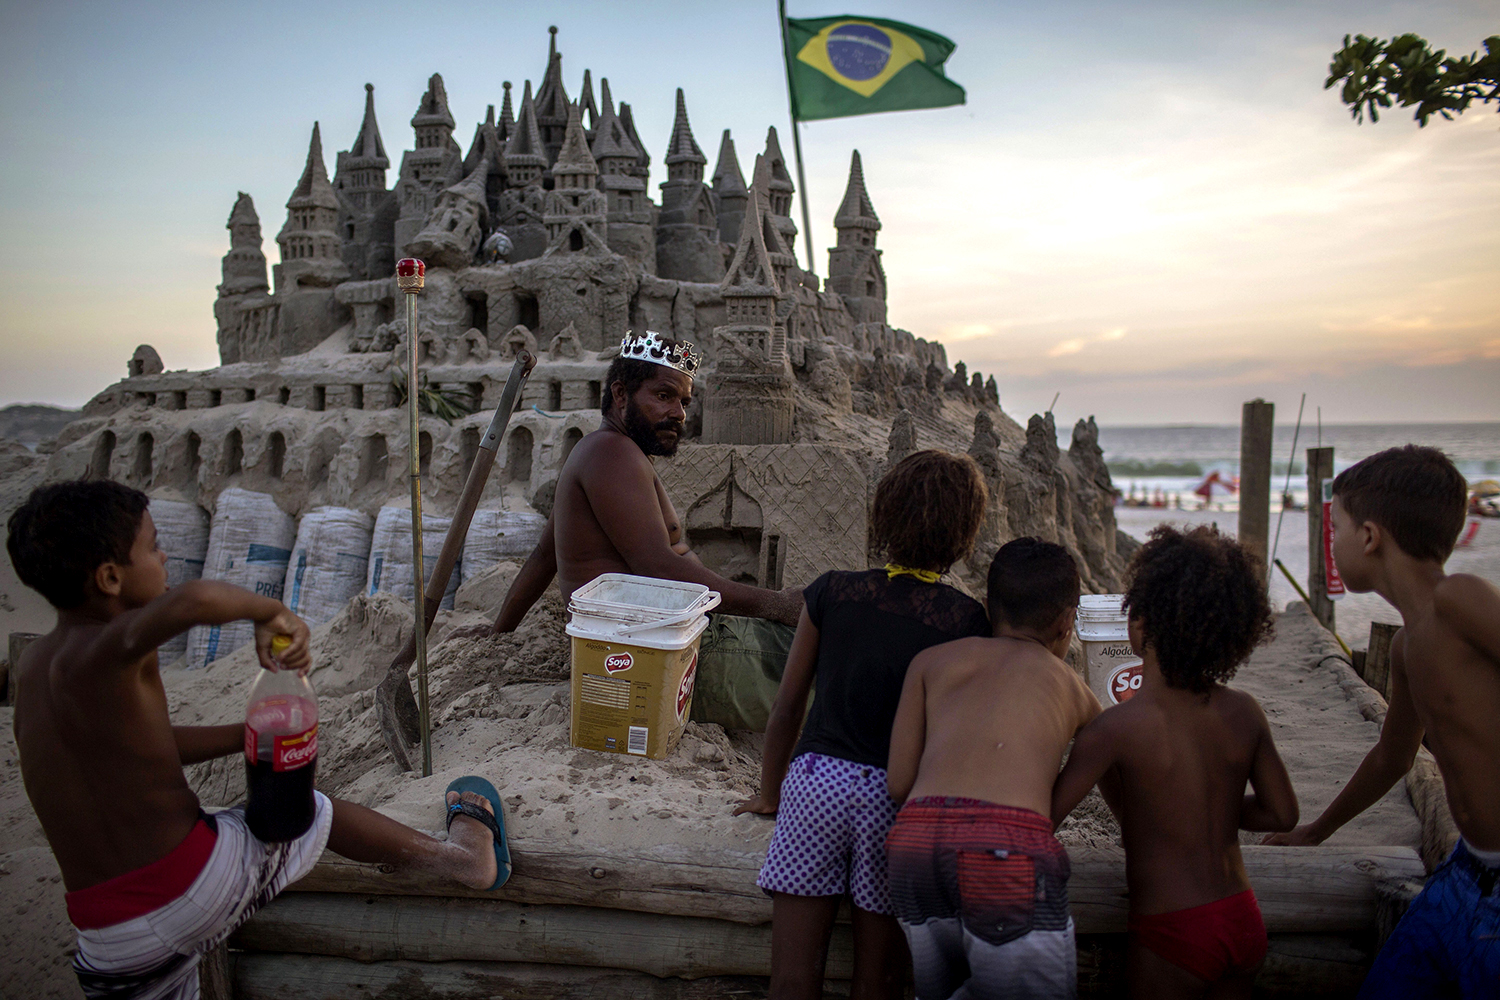 This Man Has Lived In A Sand Castle For Over 20 Years sand castle man throne GettyImages 907298912